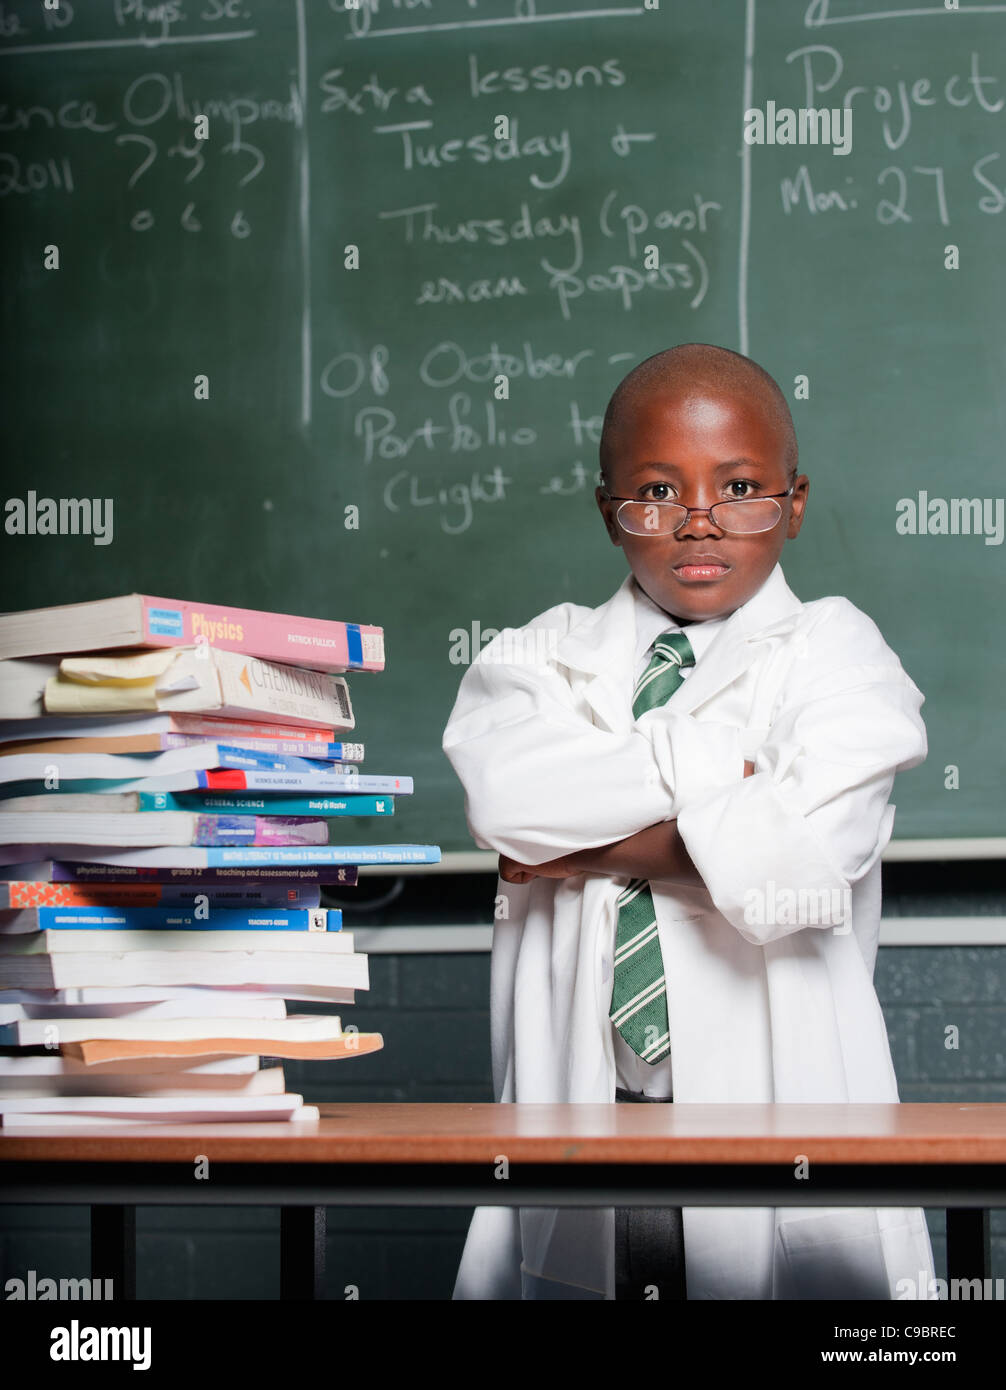 Portrait of boy wearing lab coat in classroom, Johannesburg, Gauteng Province, South Africa - Stock Image